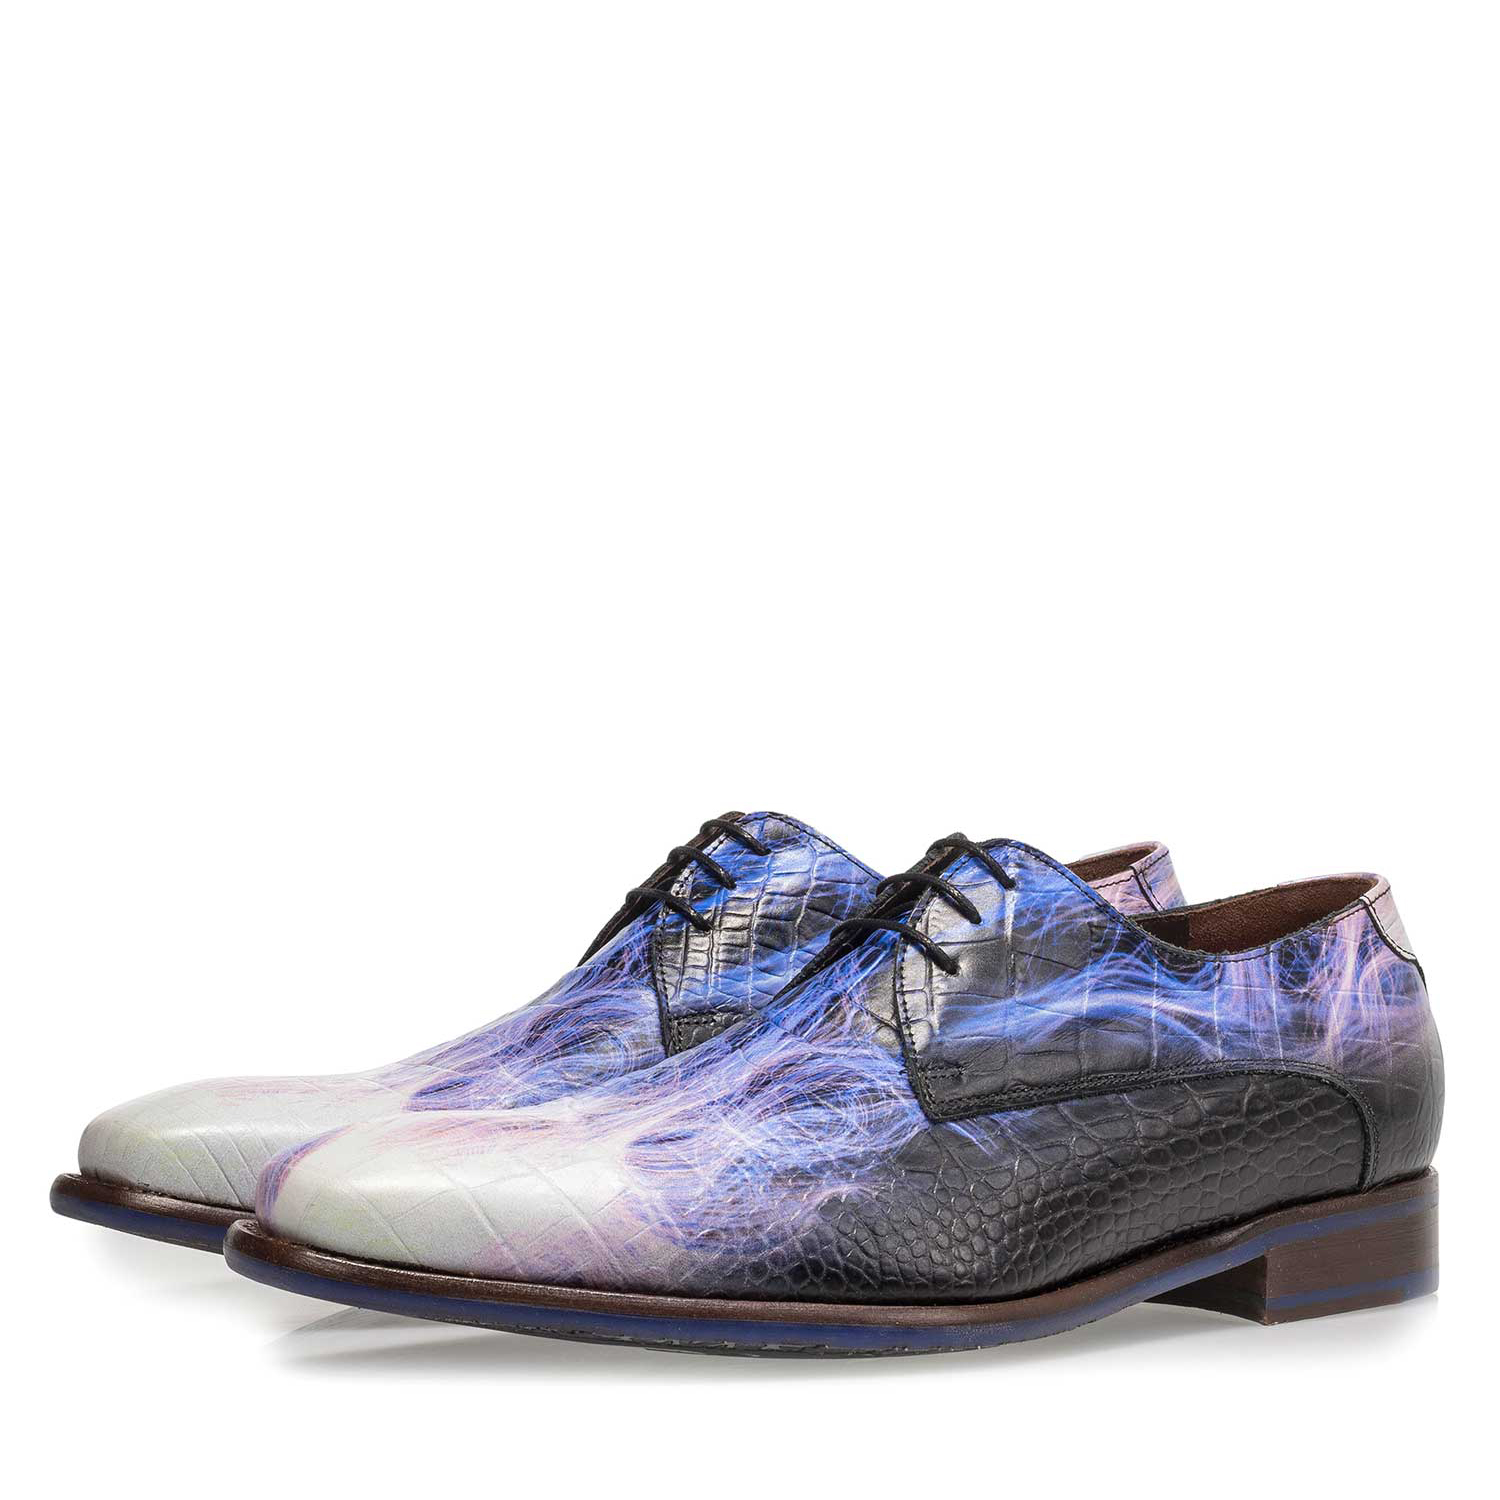 18123/04 - Premium purple calf leather lace shoe with lightning bolt print